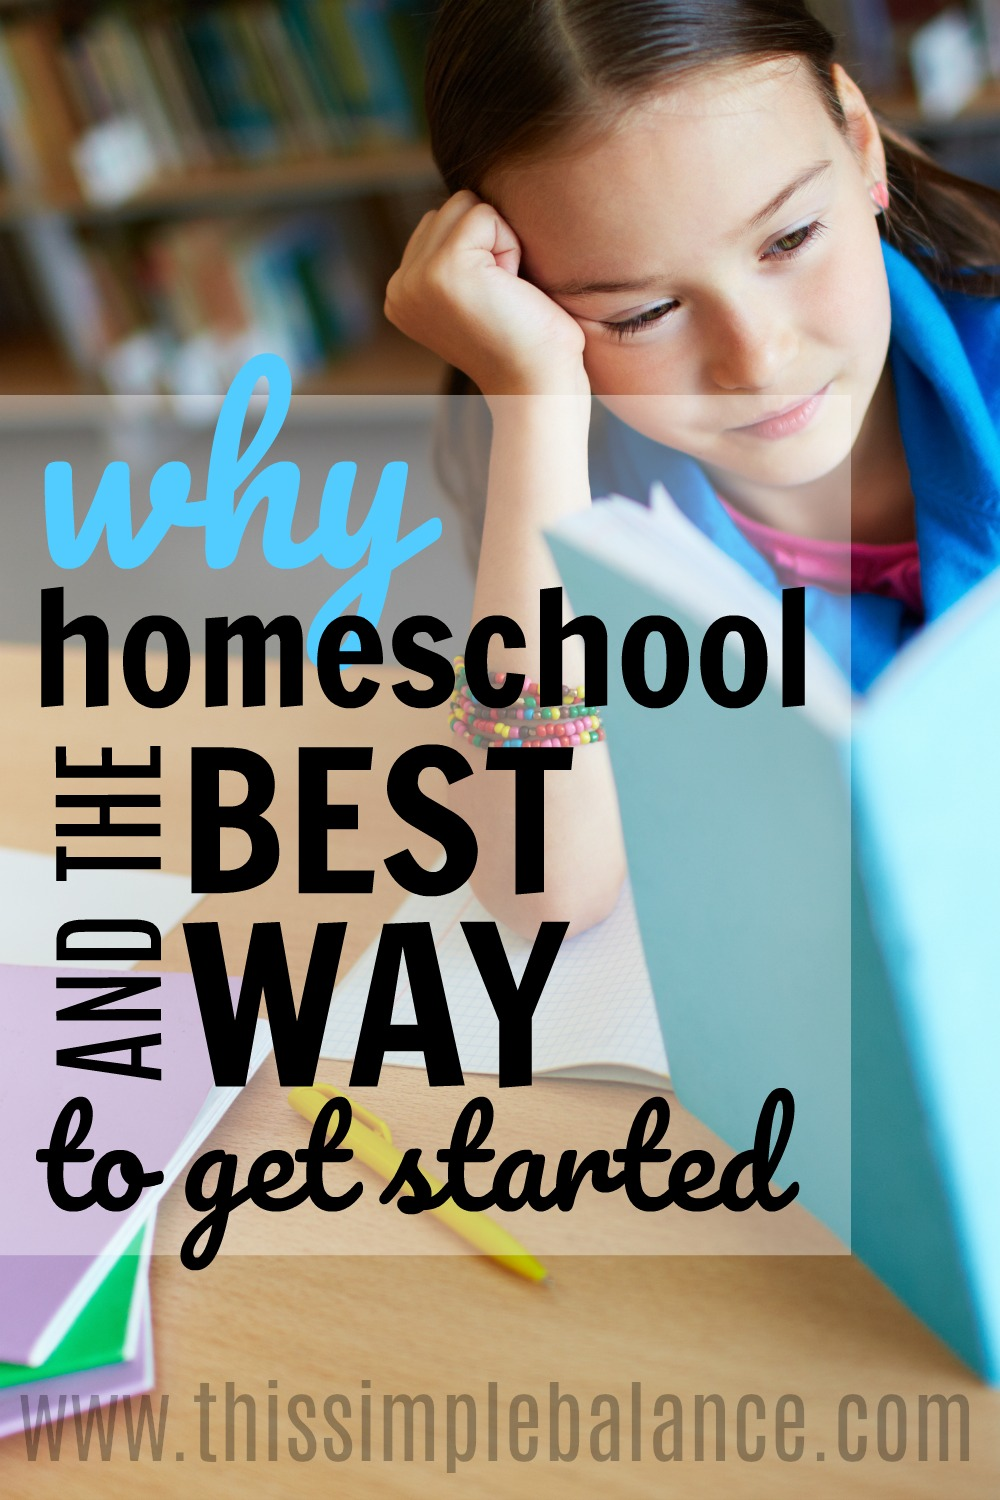 Why Homeschool: I've never thought about some of these reasons as good reasons to homeschool. This really helped me to think through whether homeschooling is a good educational option for our family and helped me know how to get started homeschooling!